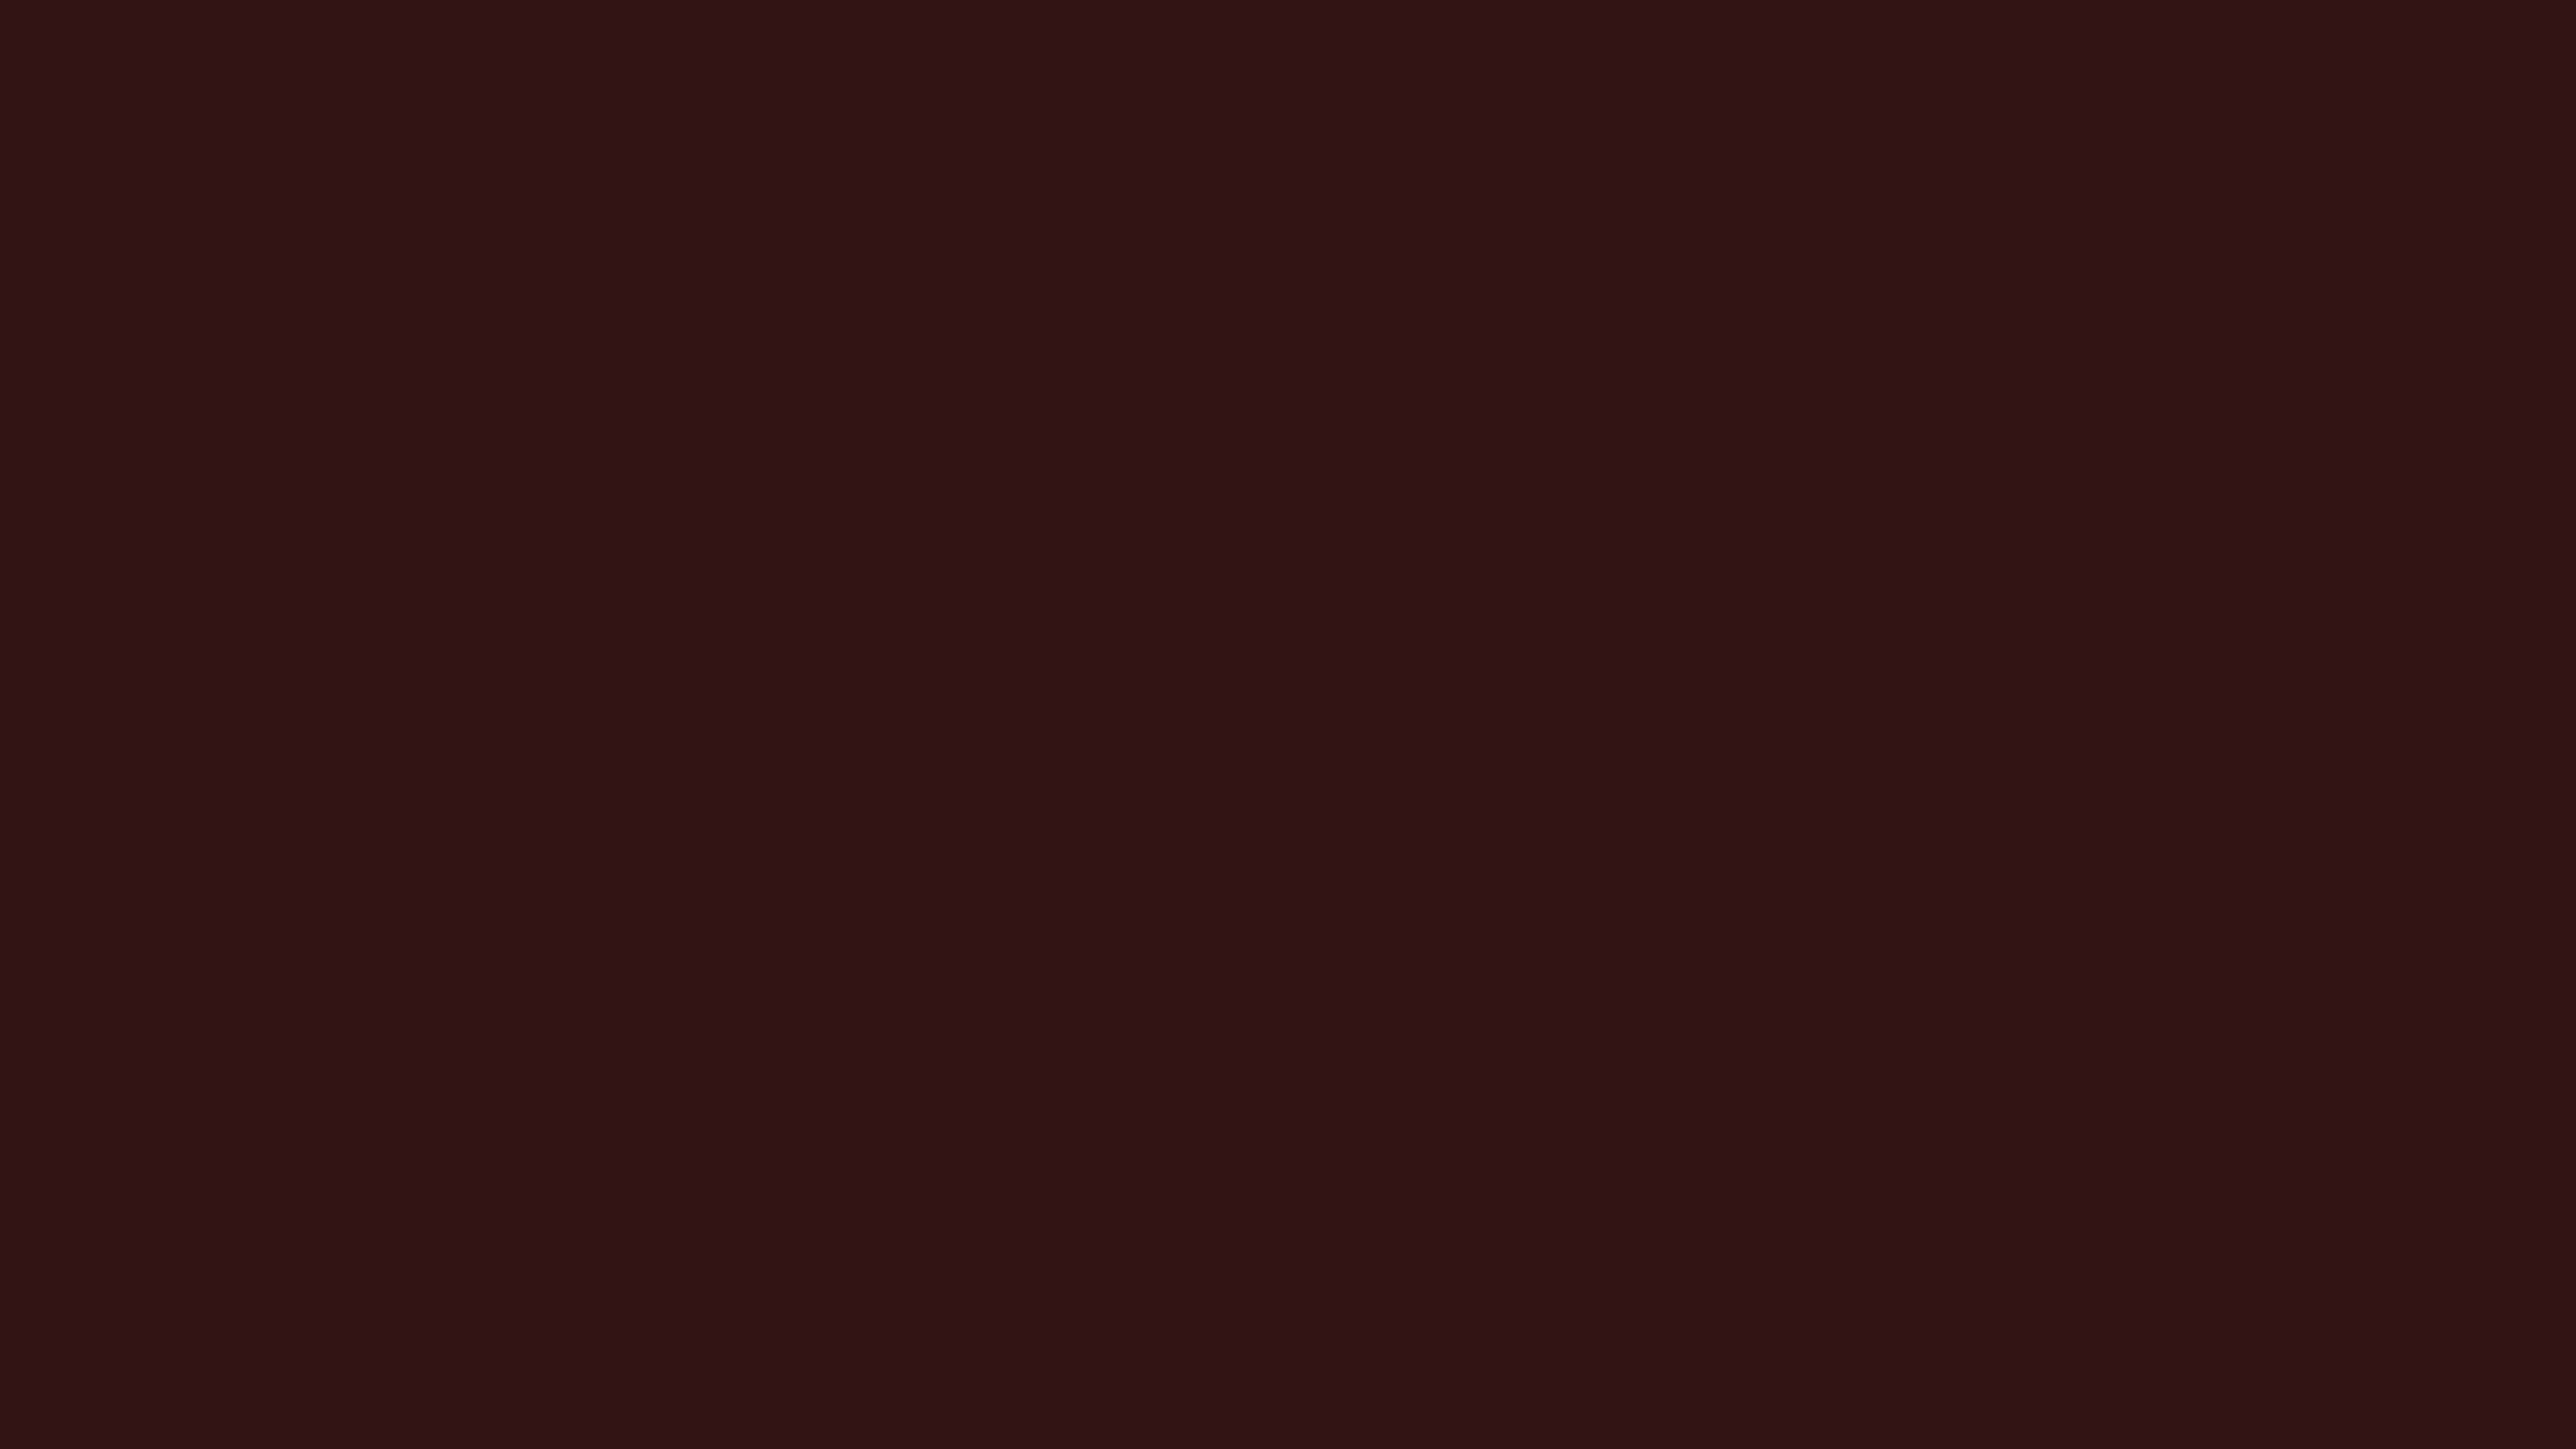 4096x2304 Seal Brown Solid Color Background